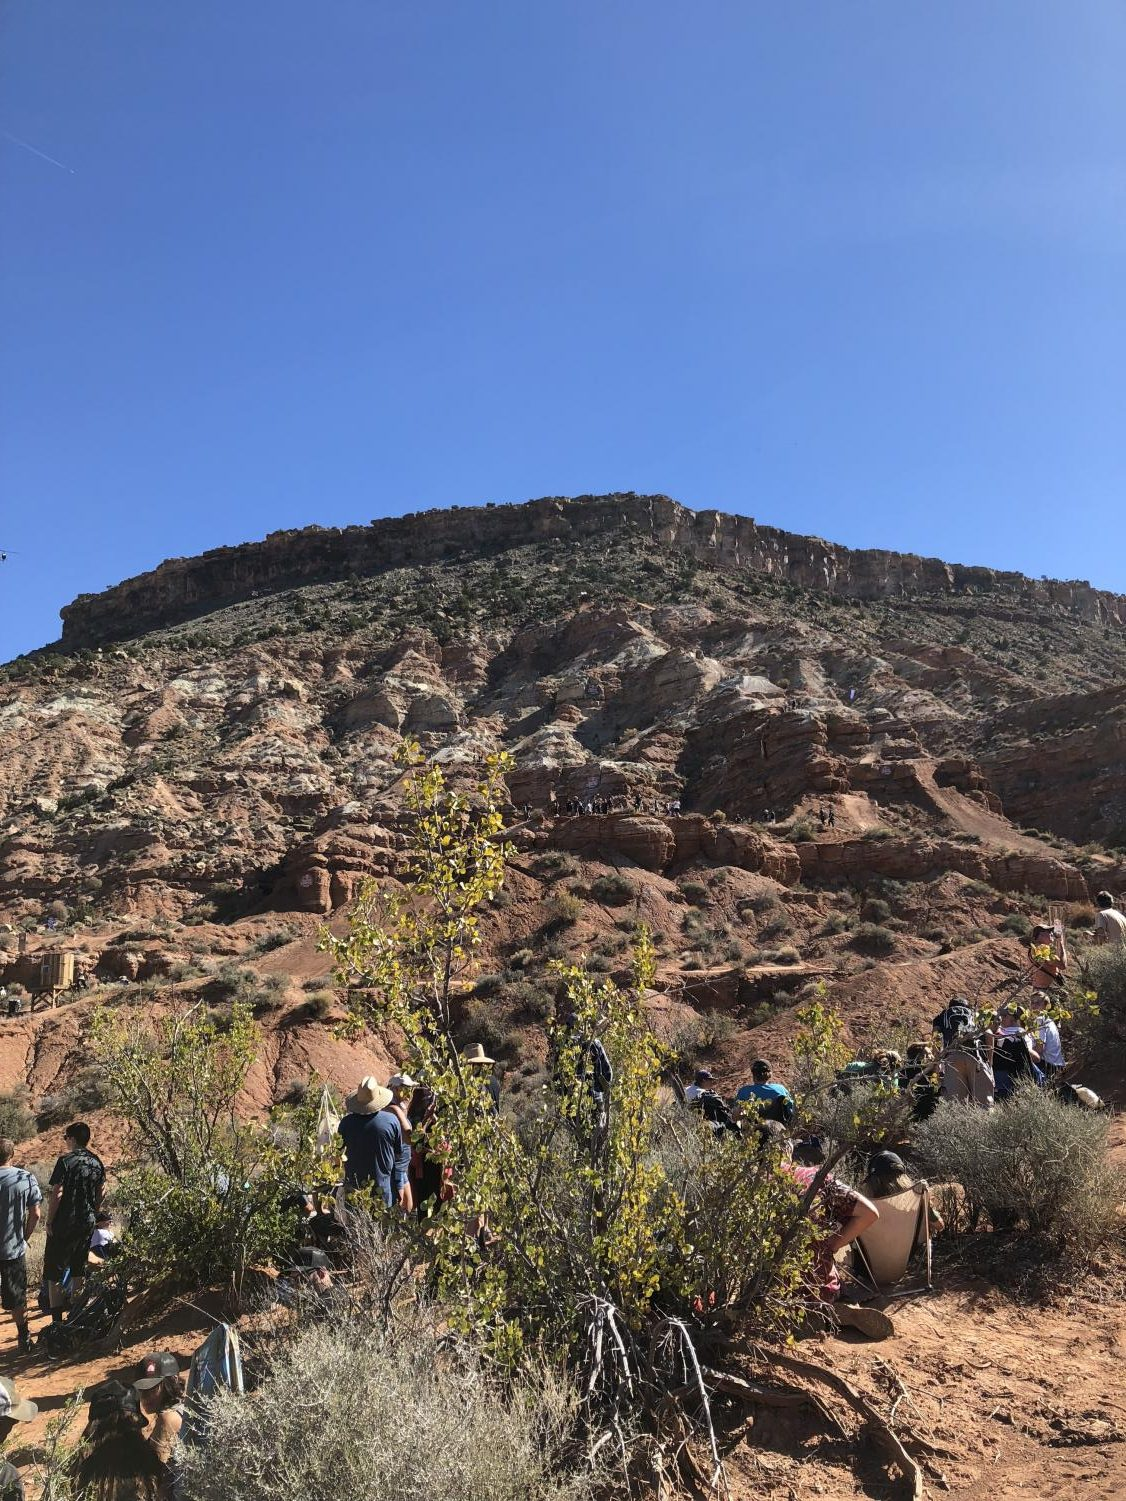 Fan stood by and watched as Red Bull Rampage athletes tore down a rocky face.